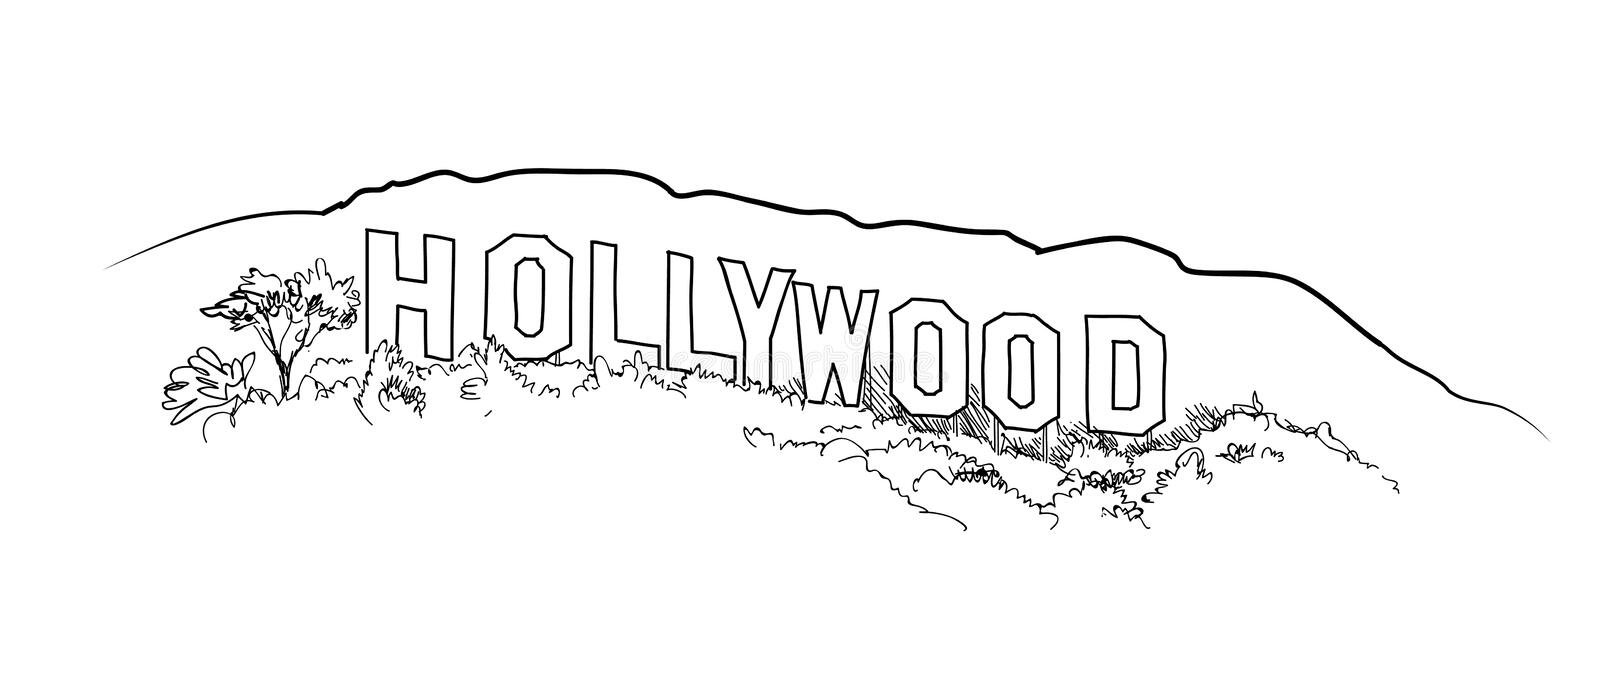 Gravure de signe de Hollywood Vue de paysage de colline de Hollywood illustration libre de droits